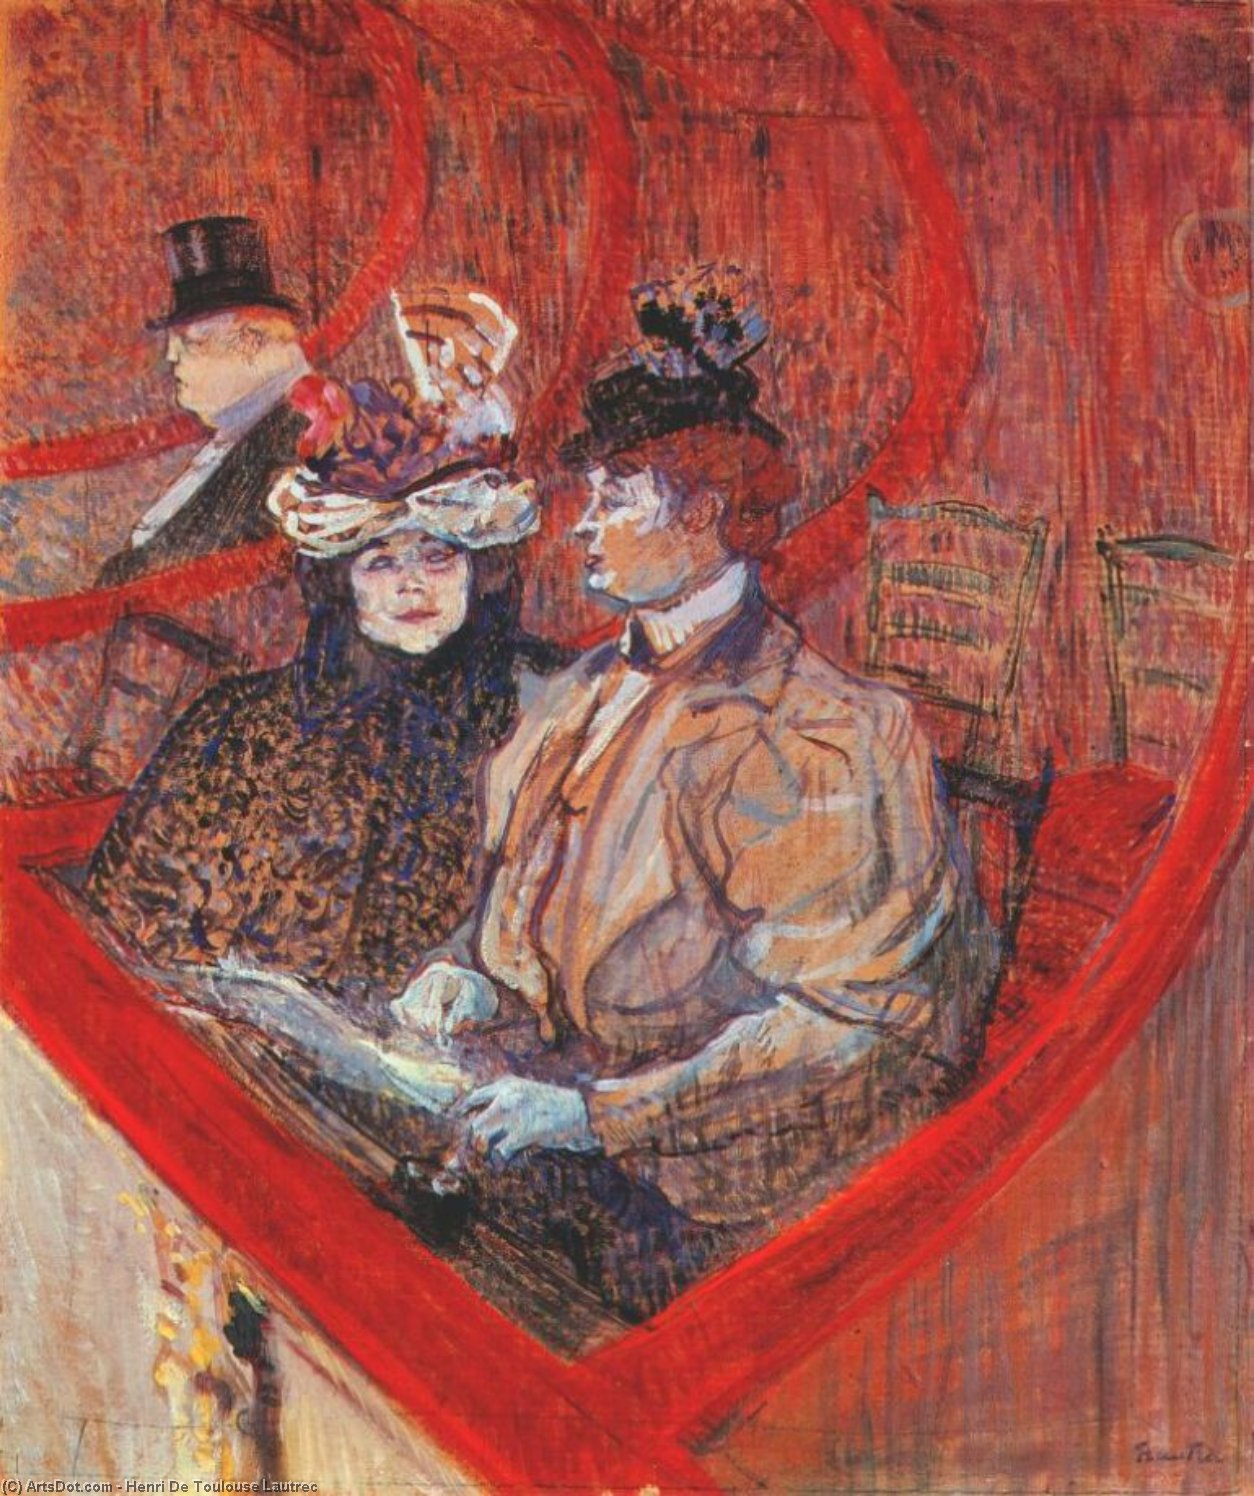 a box at the theater, 1897 by Henri De Toulouse Lautrec (1864-1901, France)